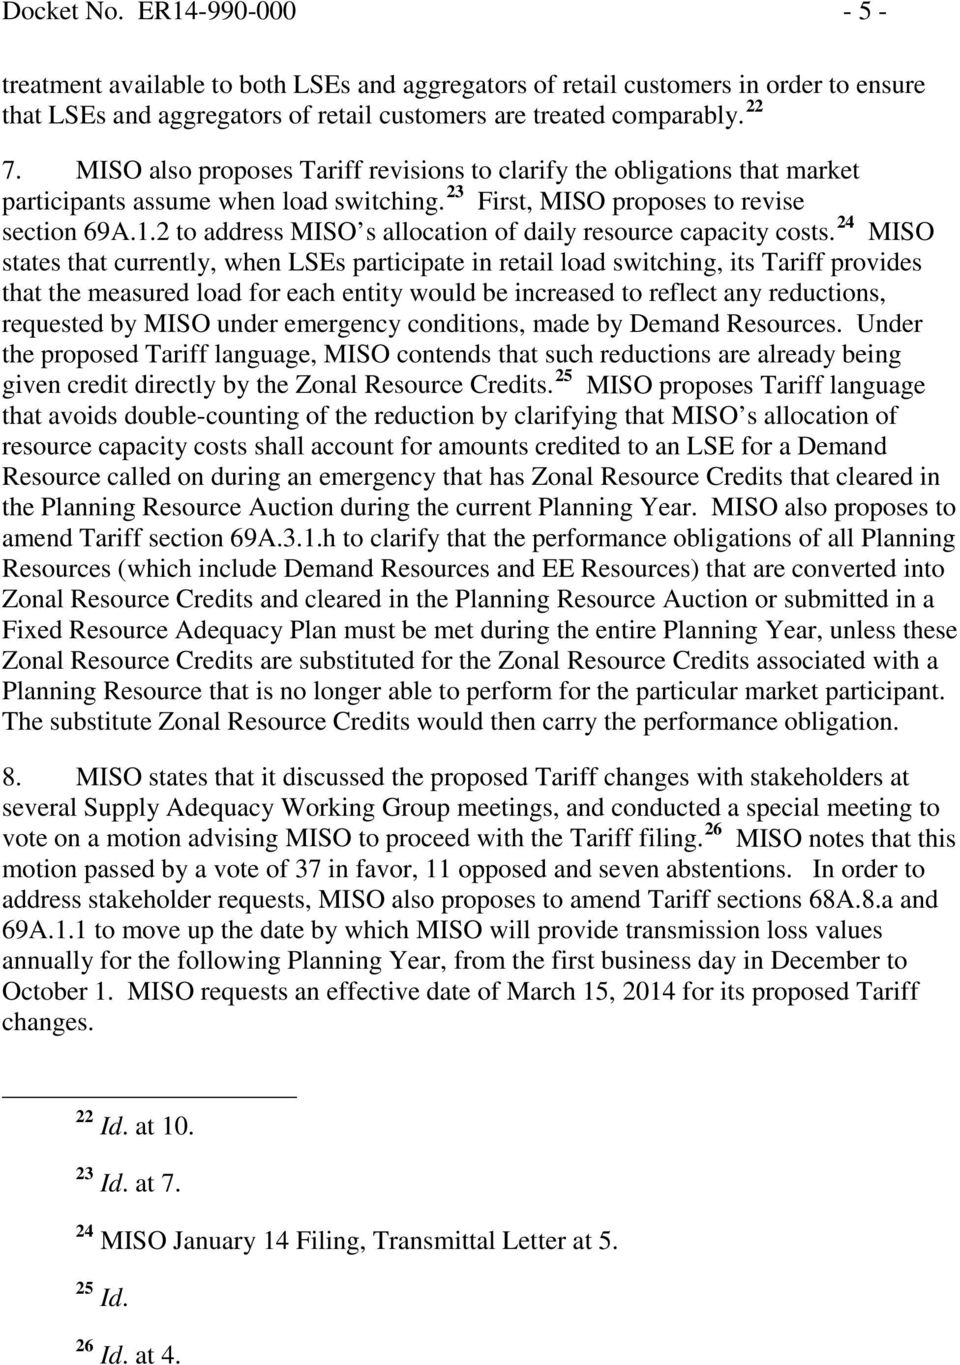 2 to address MISO s allocation of daily resource capacity costs.